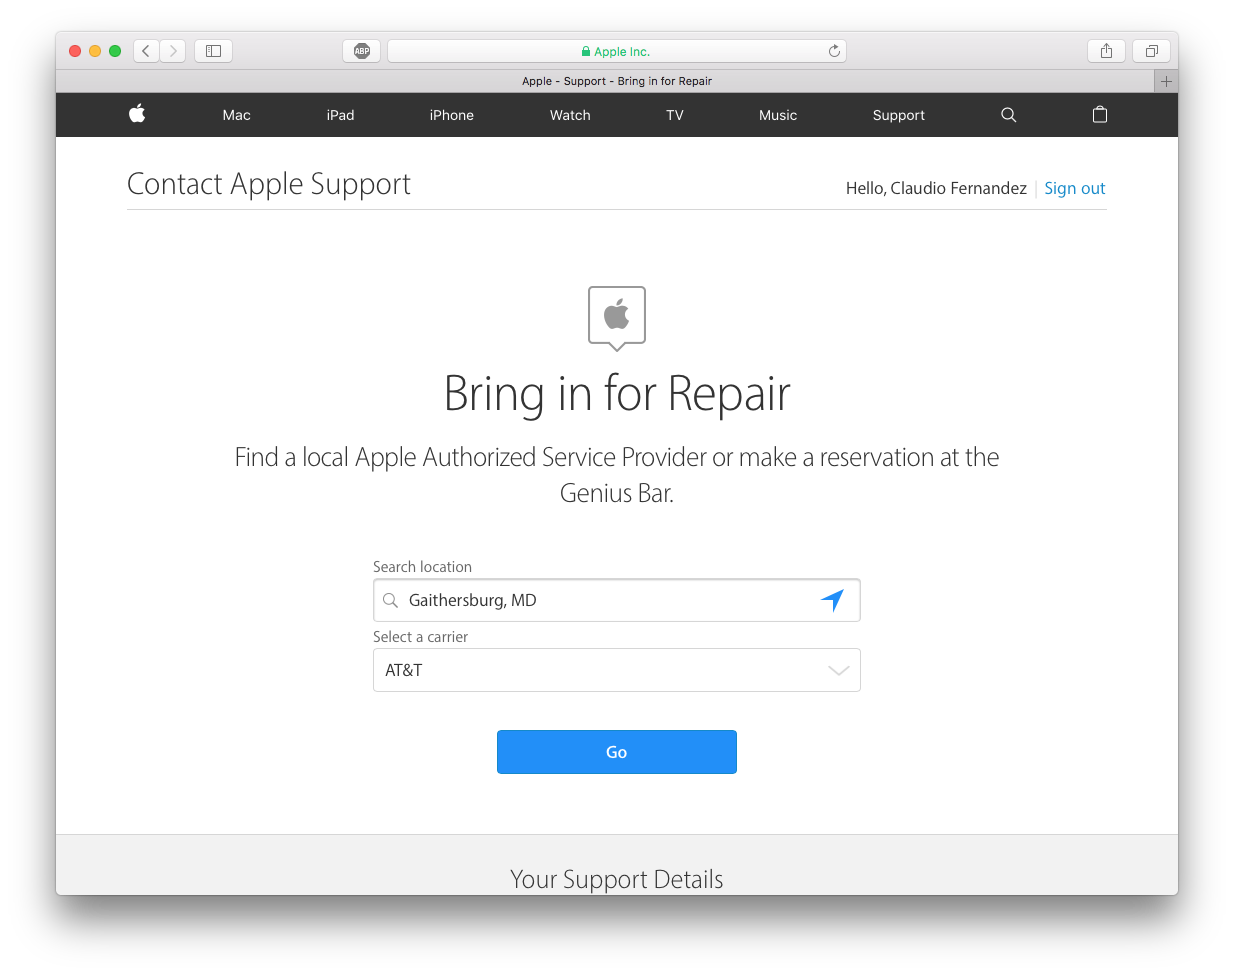 Apple Get Support Page